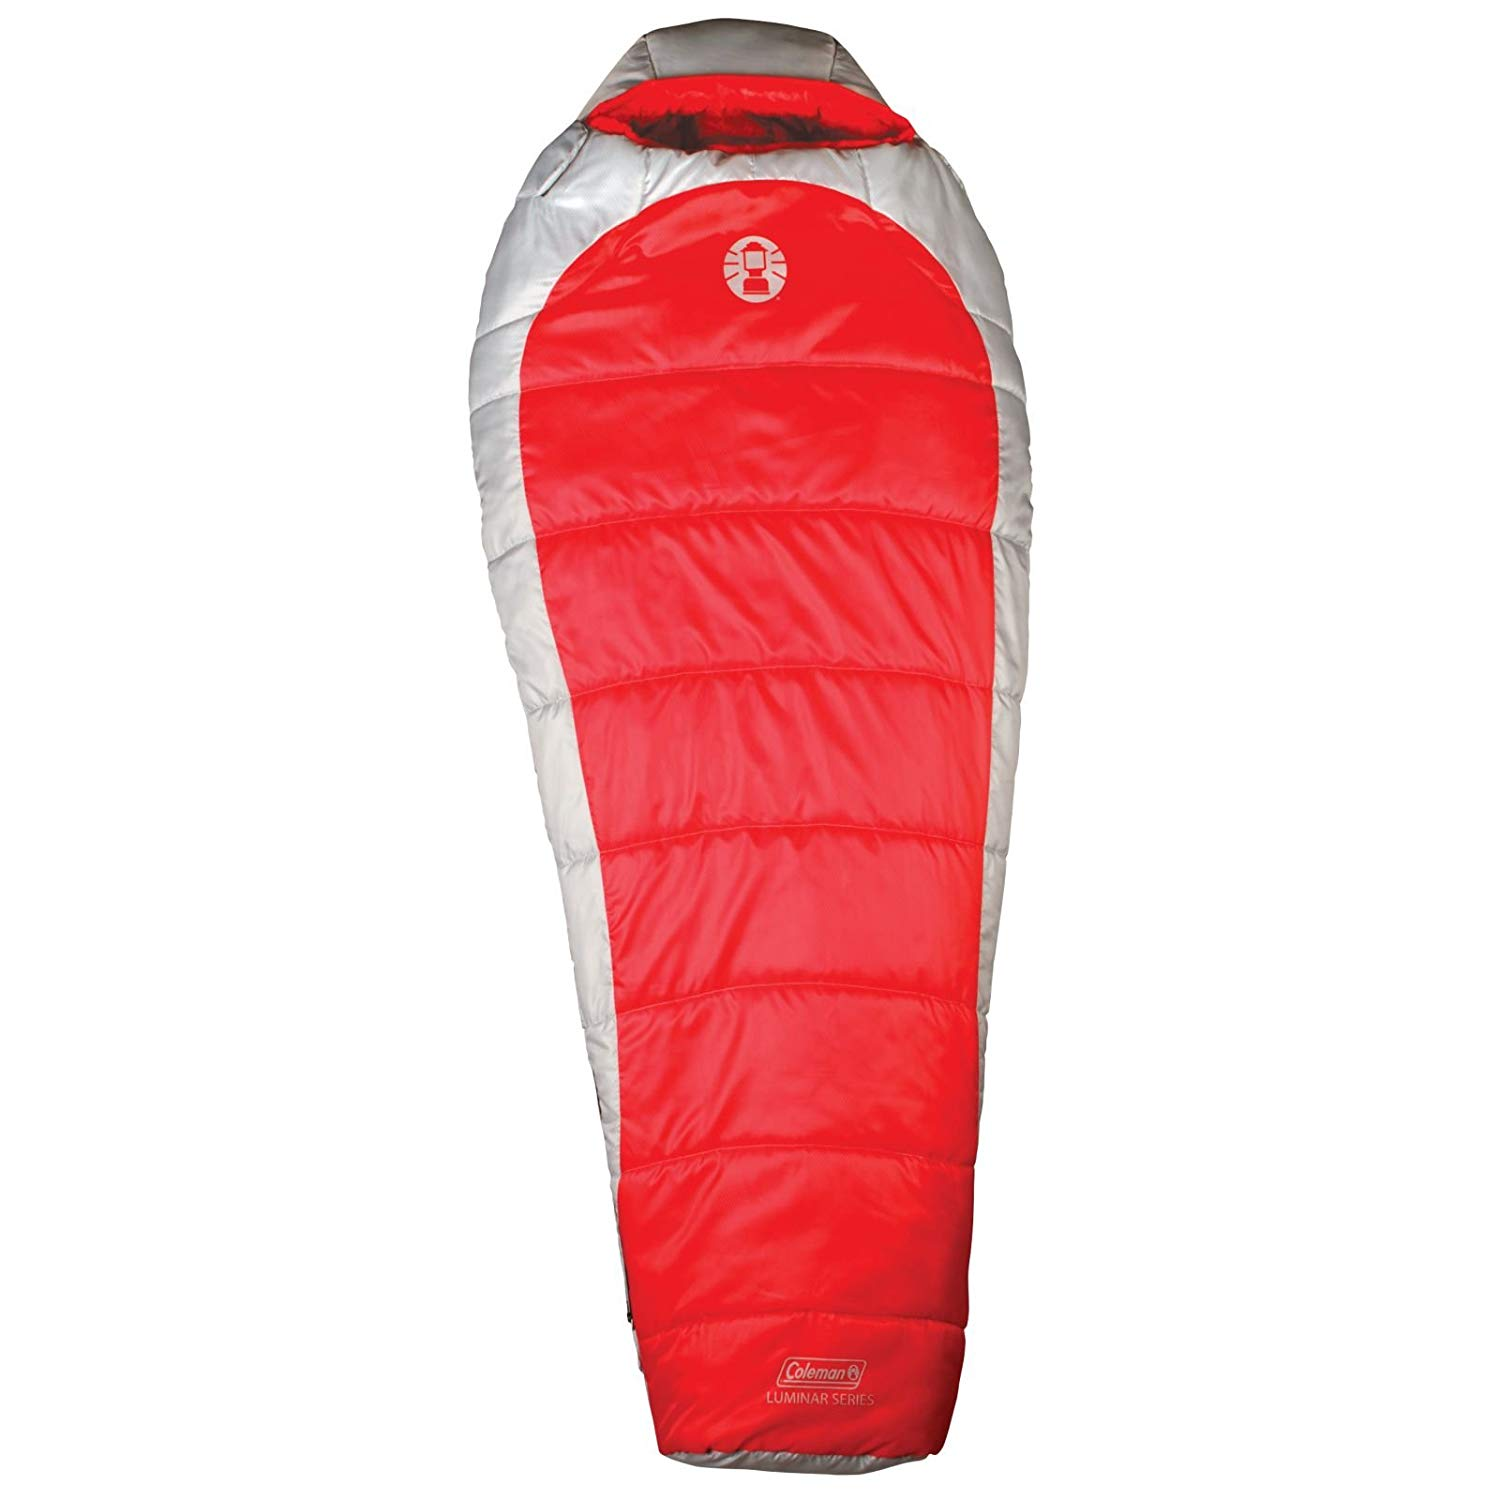 An image related to Coleman Silverton 2000014153 Women's 30 Degree Sleeping Bag